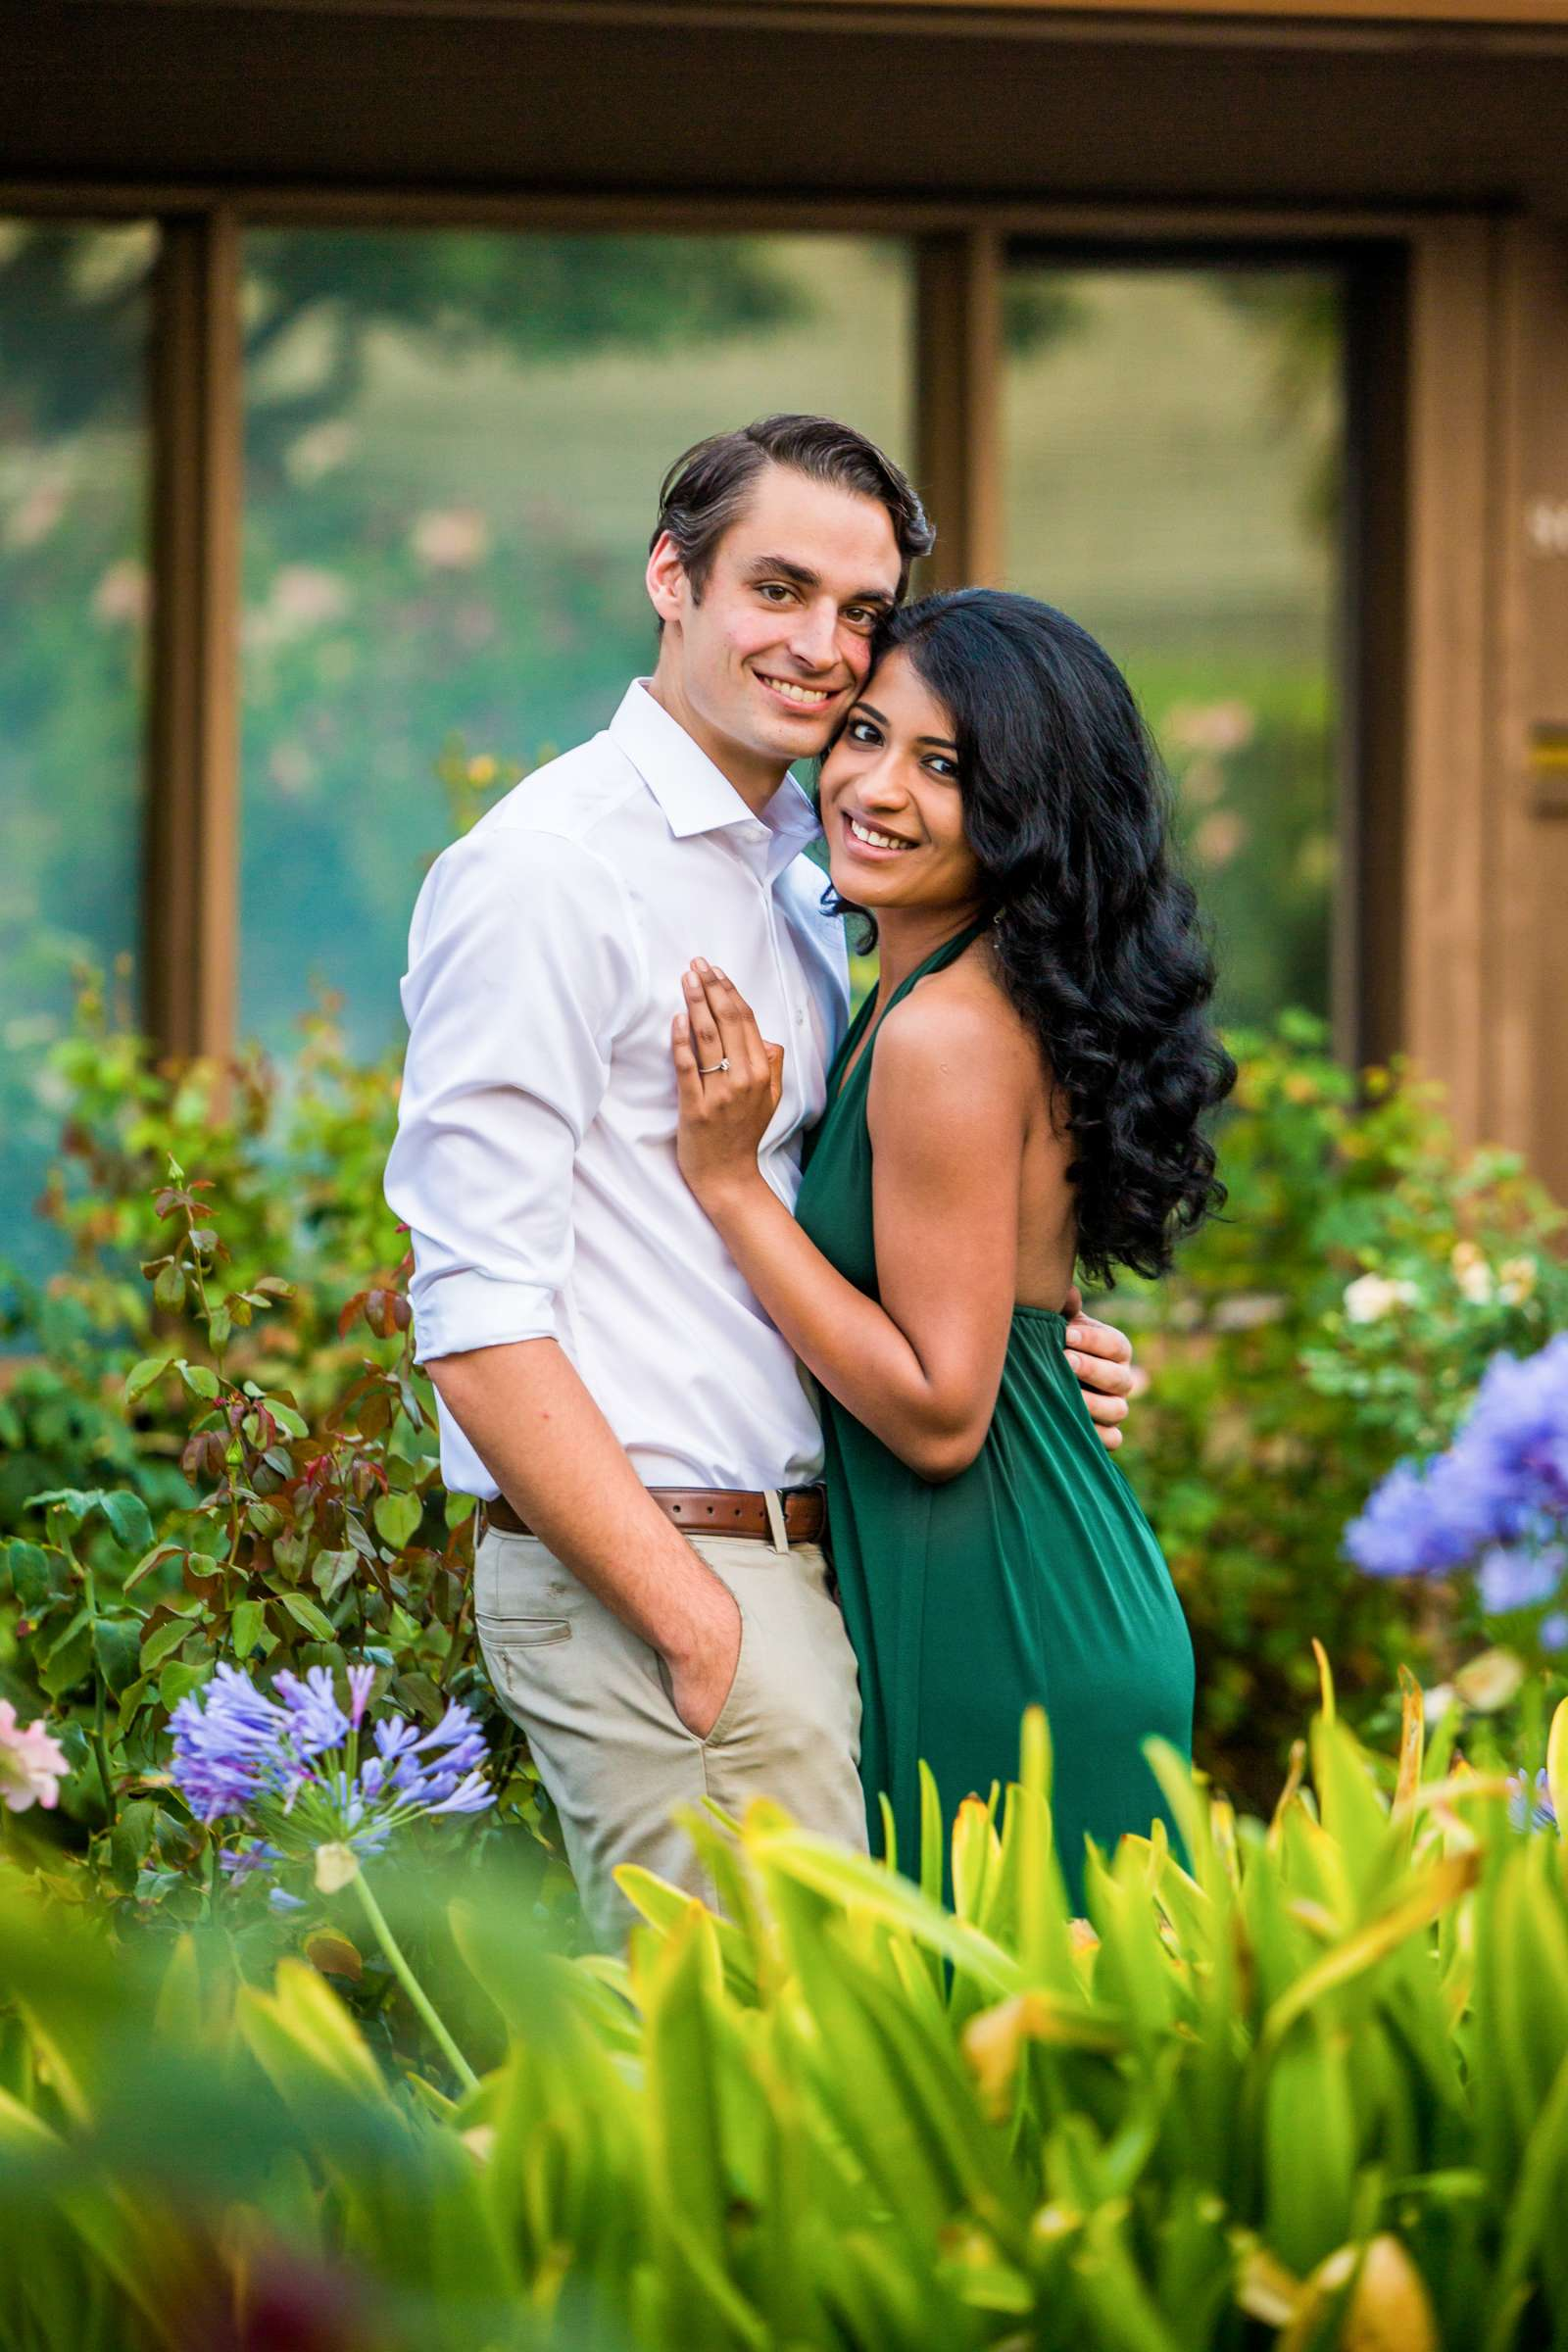 Grand Tradition Estate Engagement, Nikita and Jaycob Engagement Photo #2 by True Photography